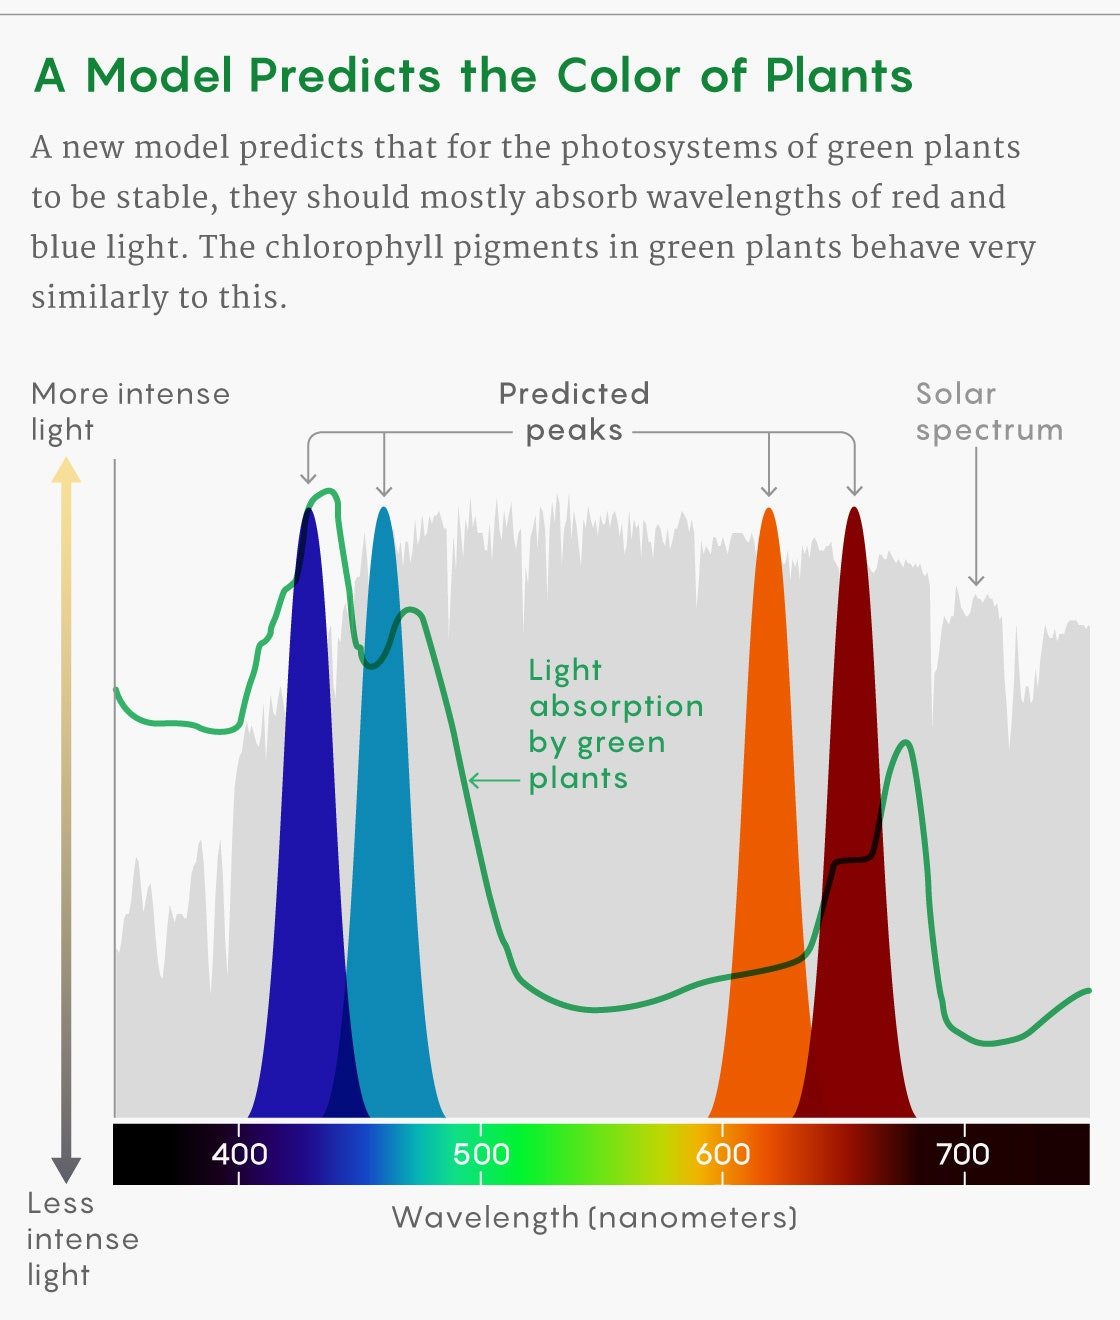 20200805.Why-Are-Plants-Green-The-Answer-Might-Work-on-Any-Planet-02.jpg